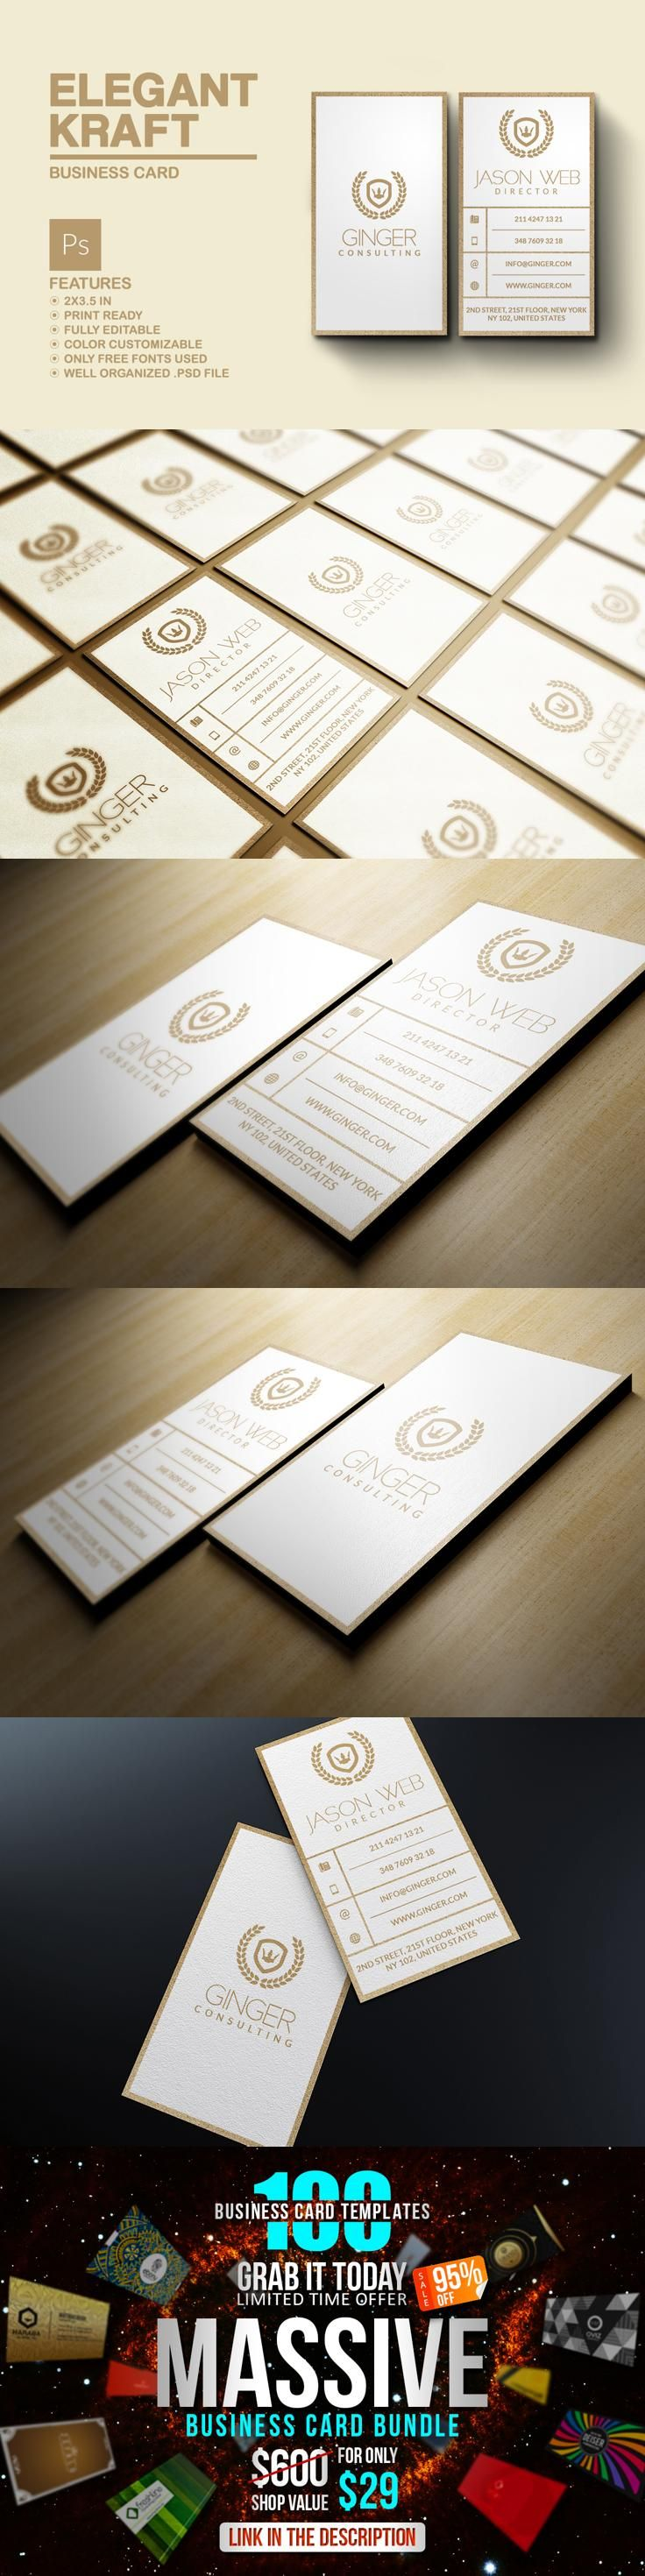 25 best logo and business card package images on pinterest